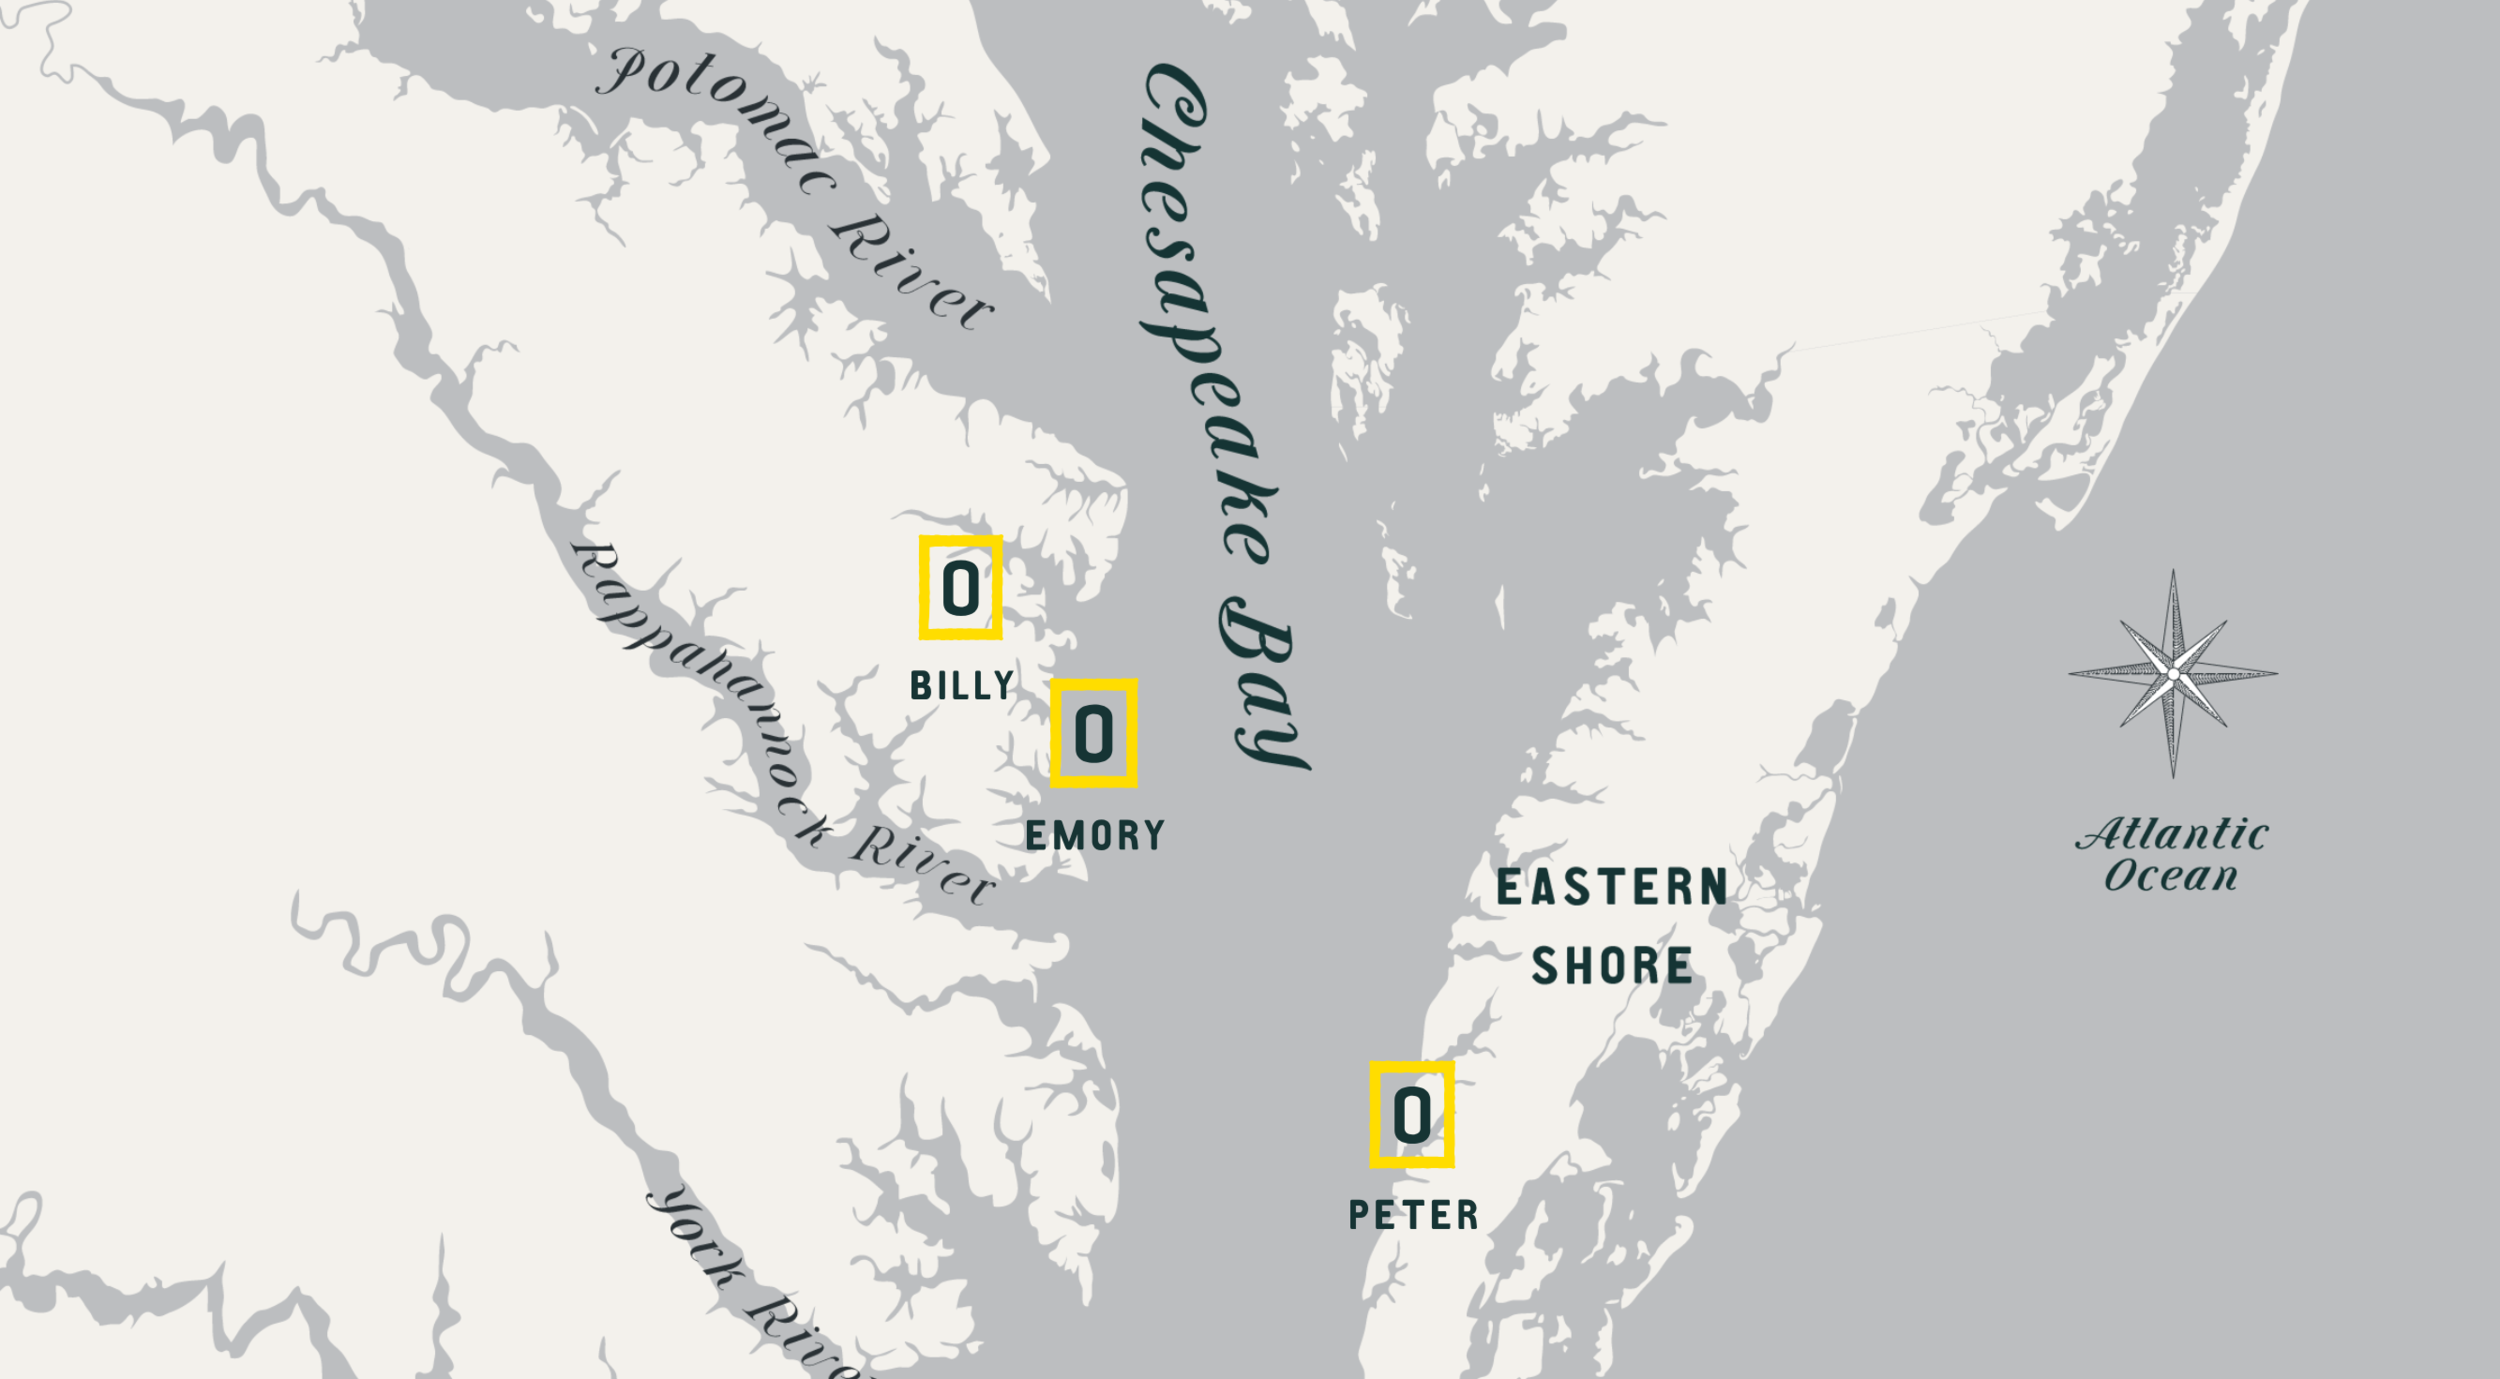 Map of Onliest Oyster Co farms. Source: onliestoysterco.com